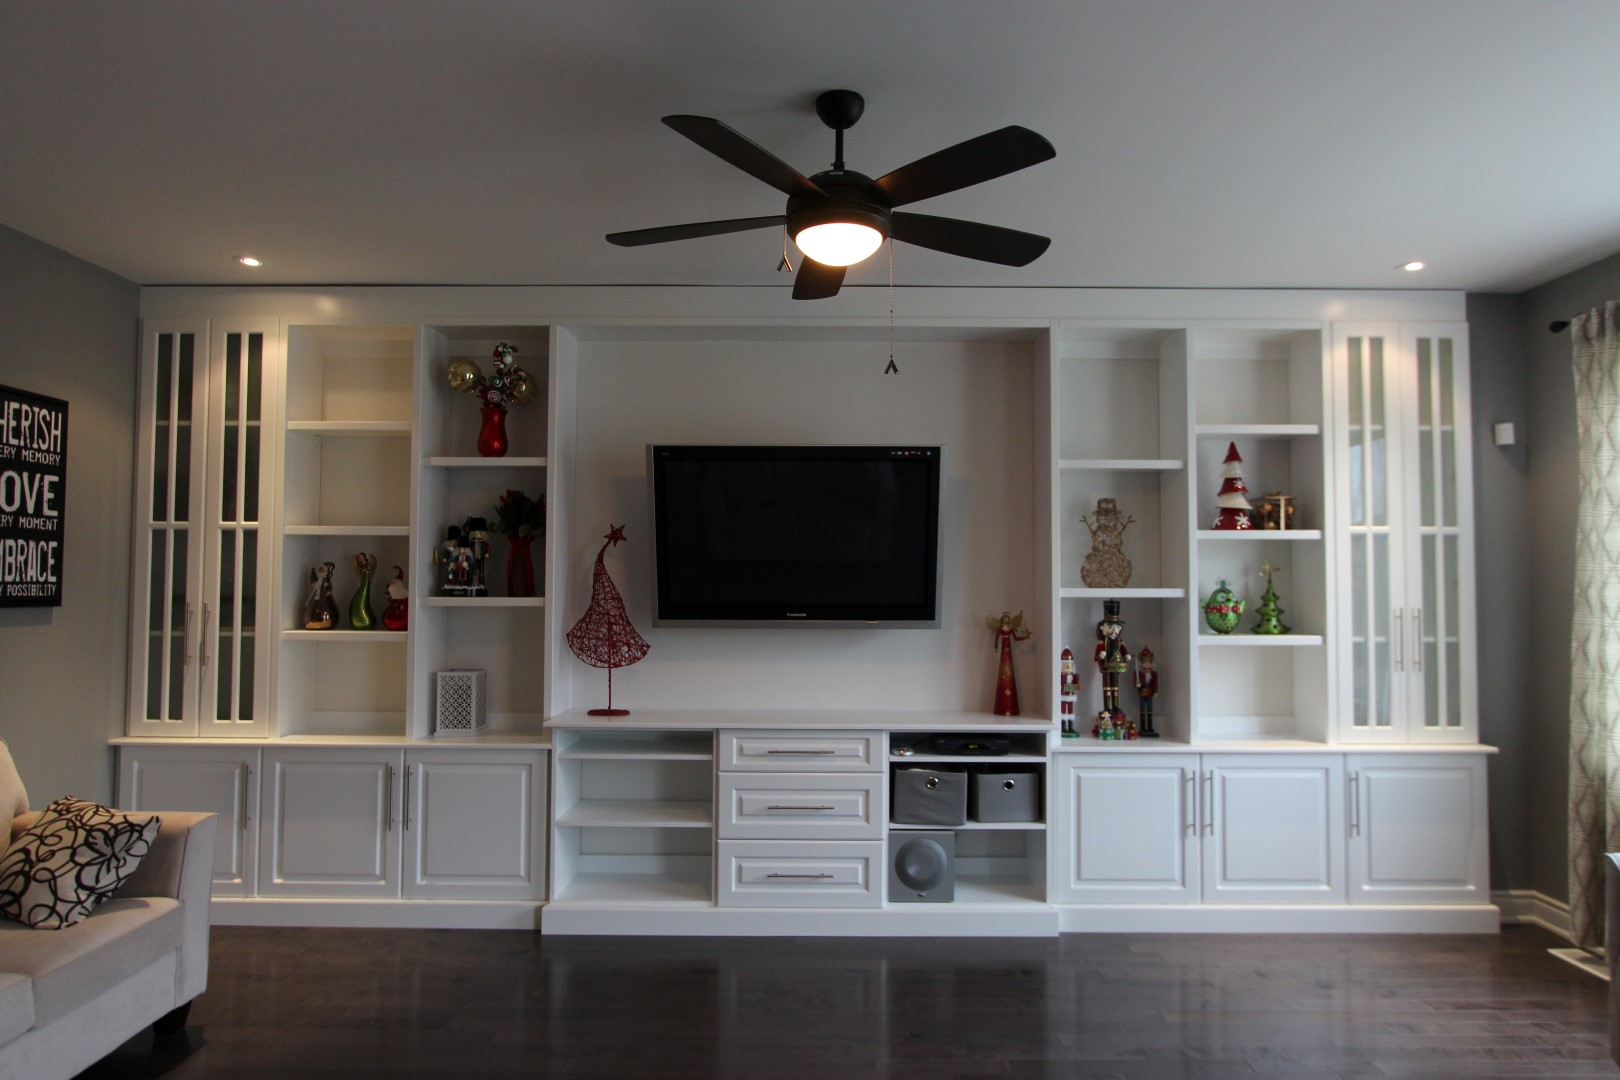 Built-in Fireplace & Entertainment Units - Gum Tree Cabinets